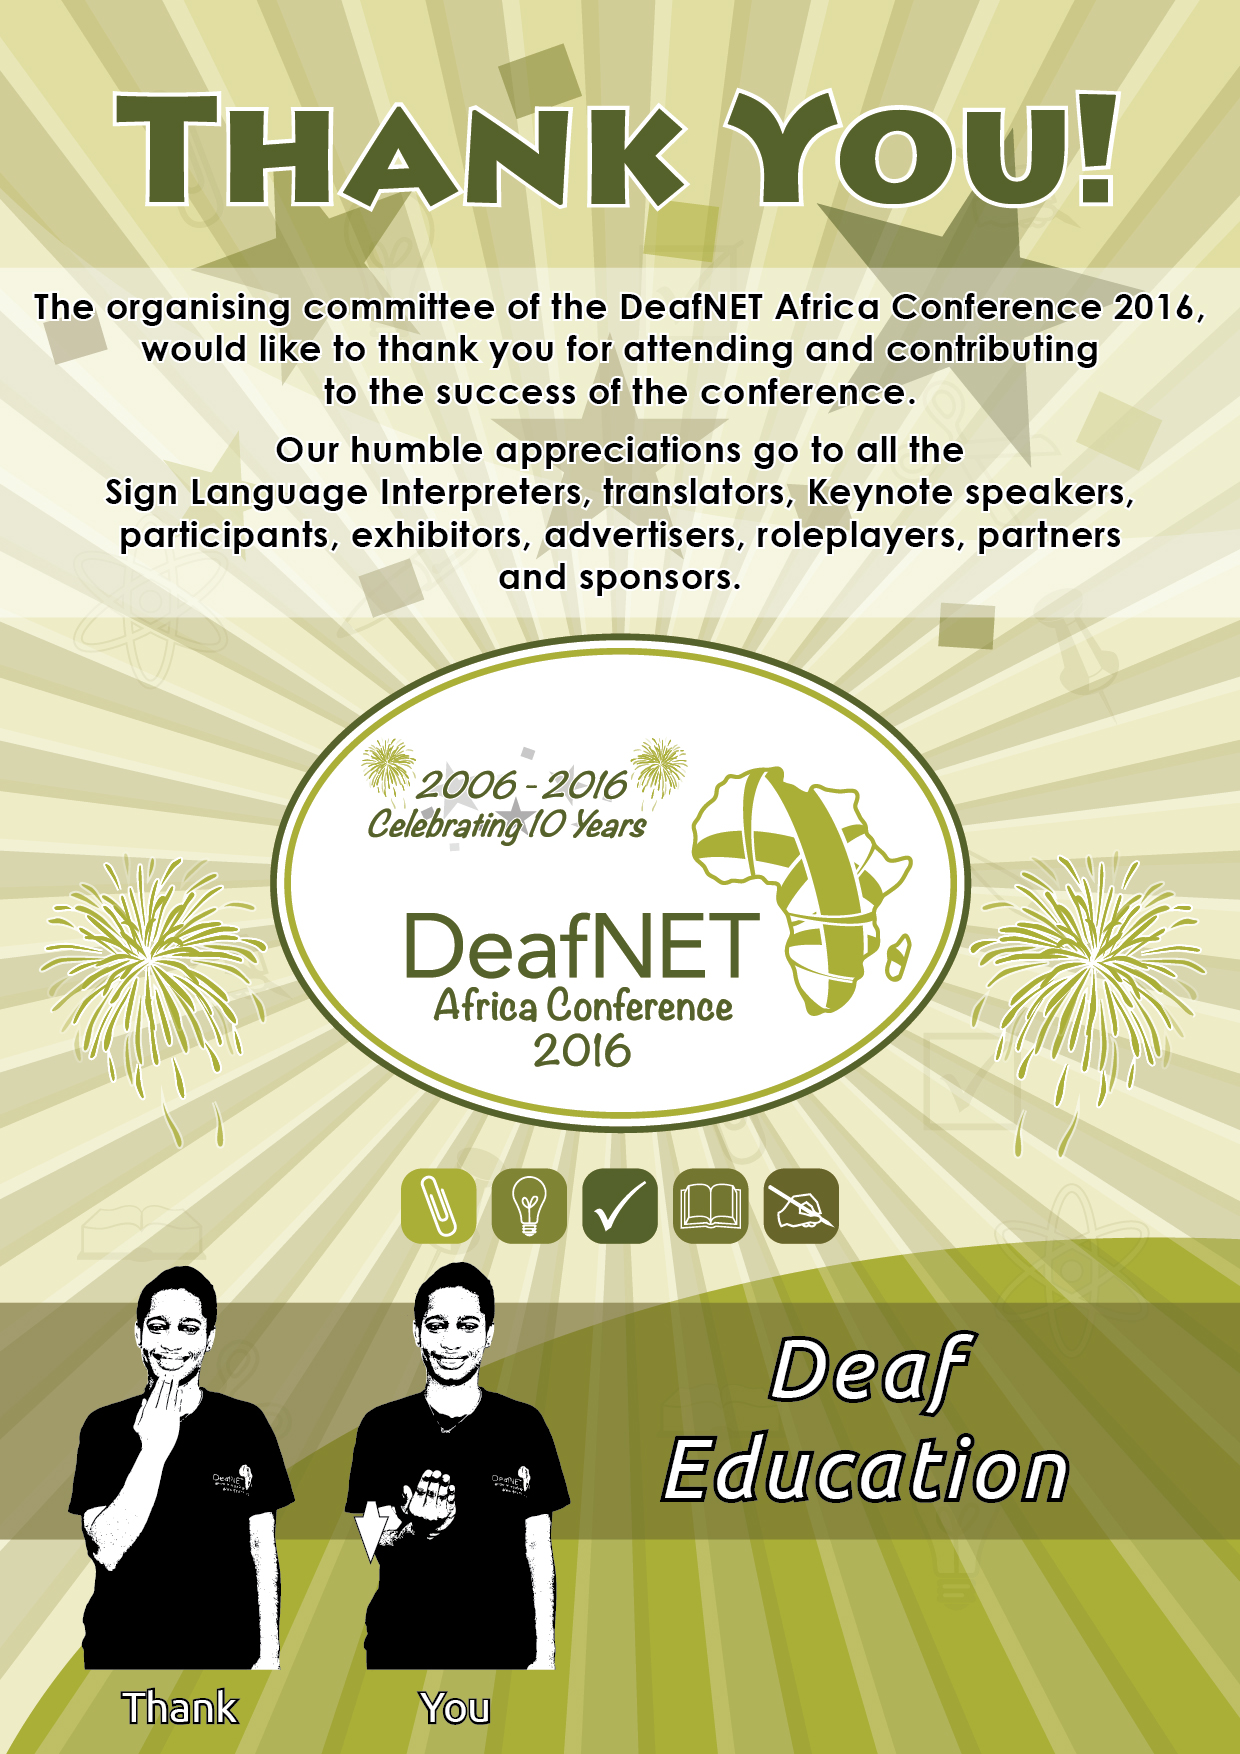 DeafNET 2016 Africa Conference THANK YOU